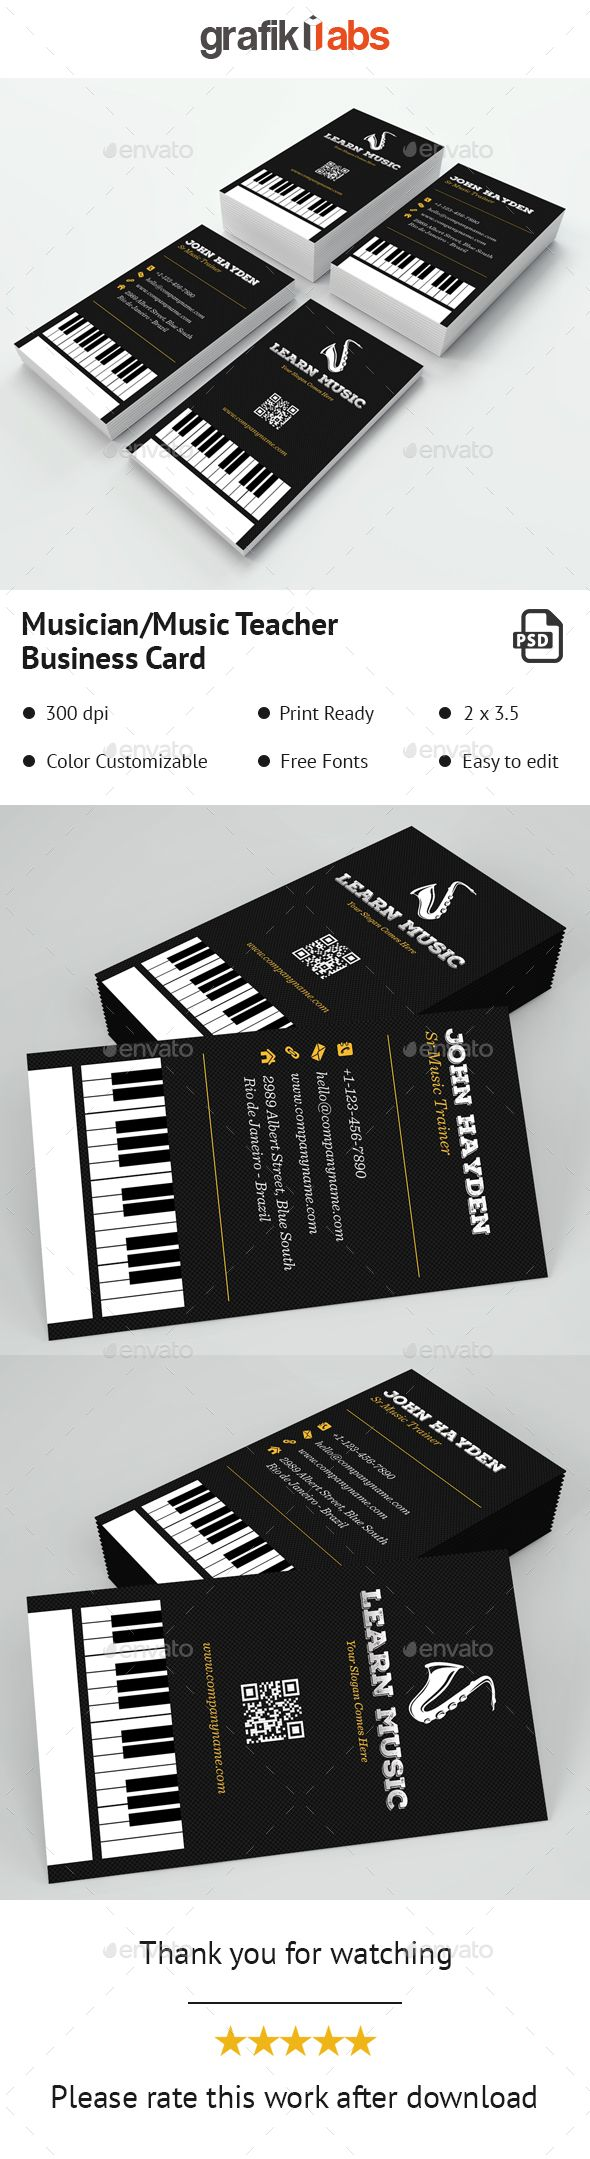 Piano/Musician Business Card | Musicians, Business cards and Pianos